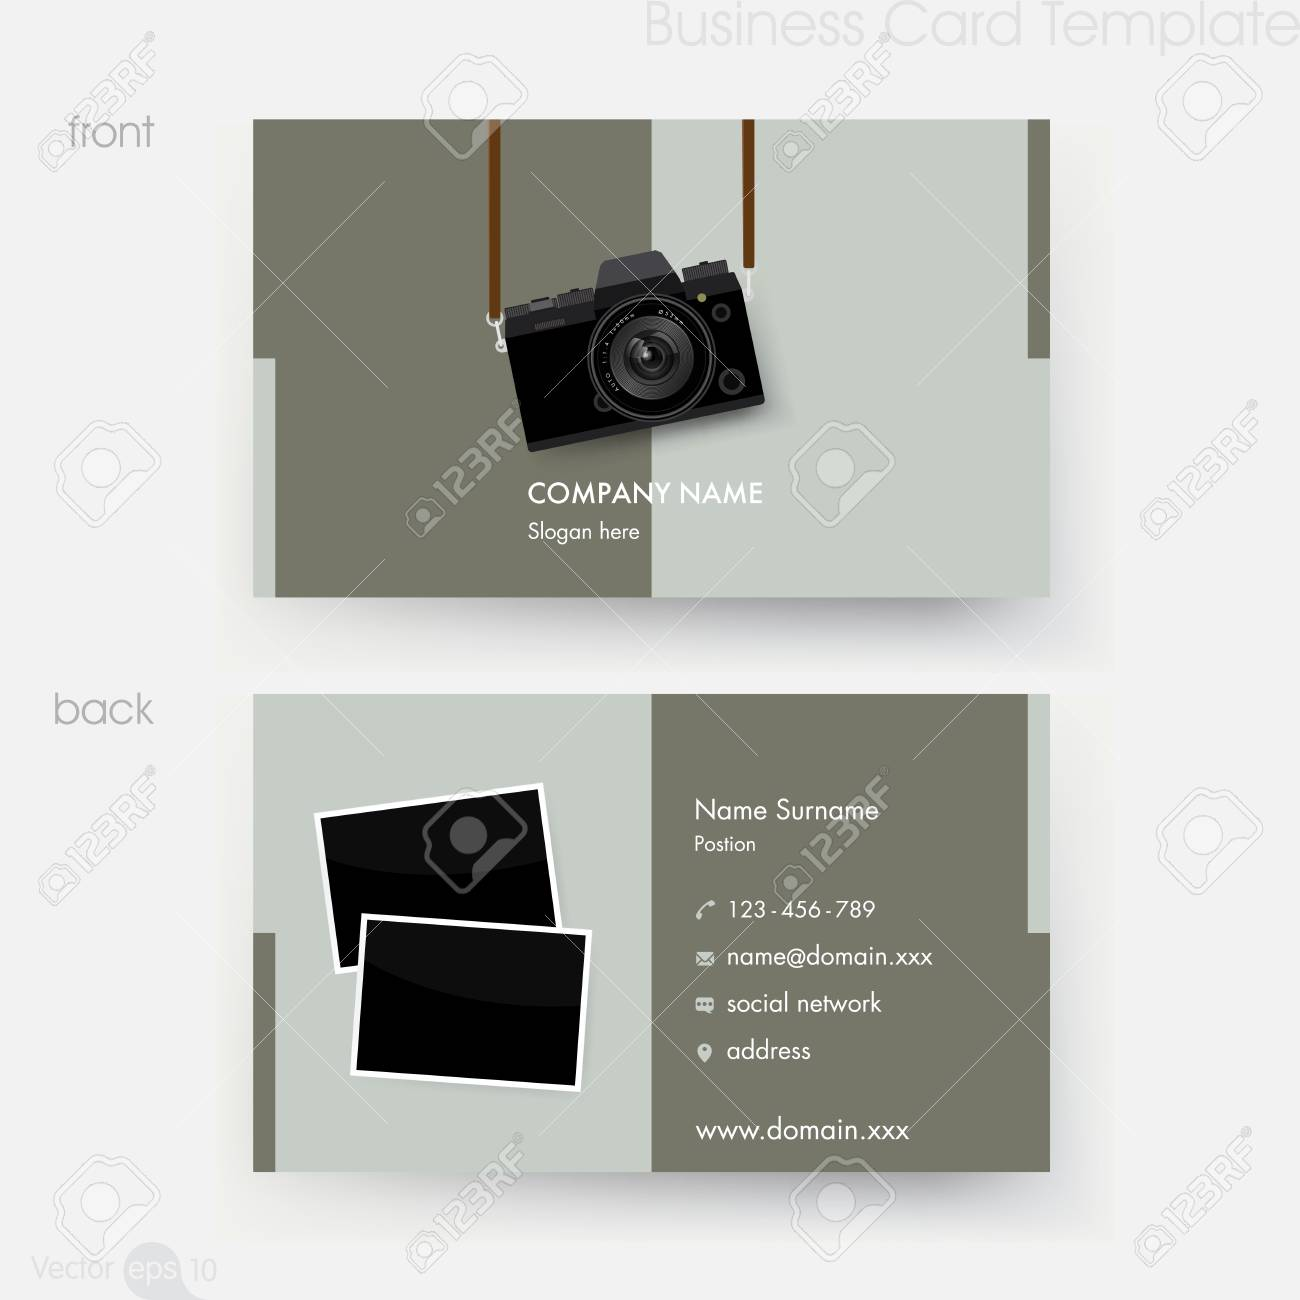 Photographer business card template royalty free cliparts vectors photographer business card template stock vector 67424735 accmission Choice Image